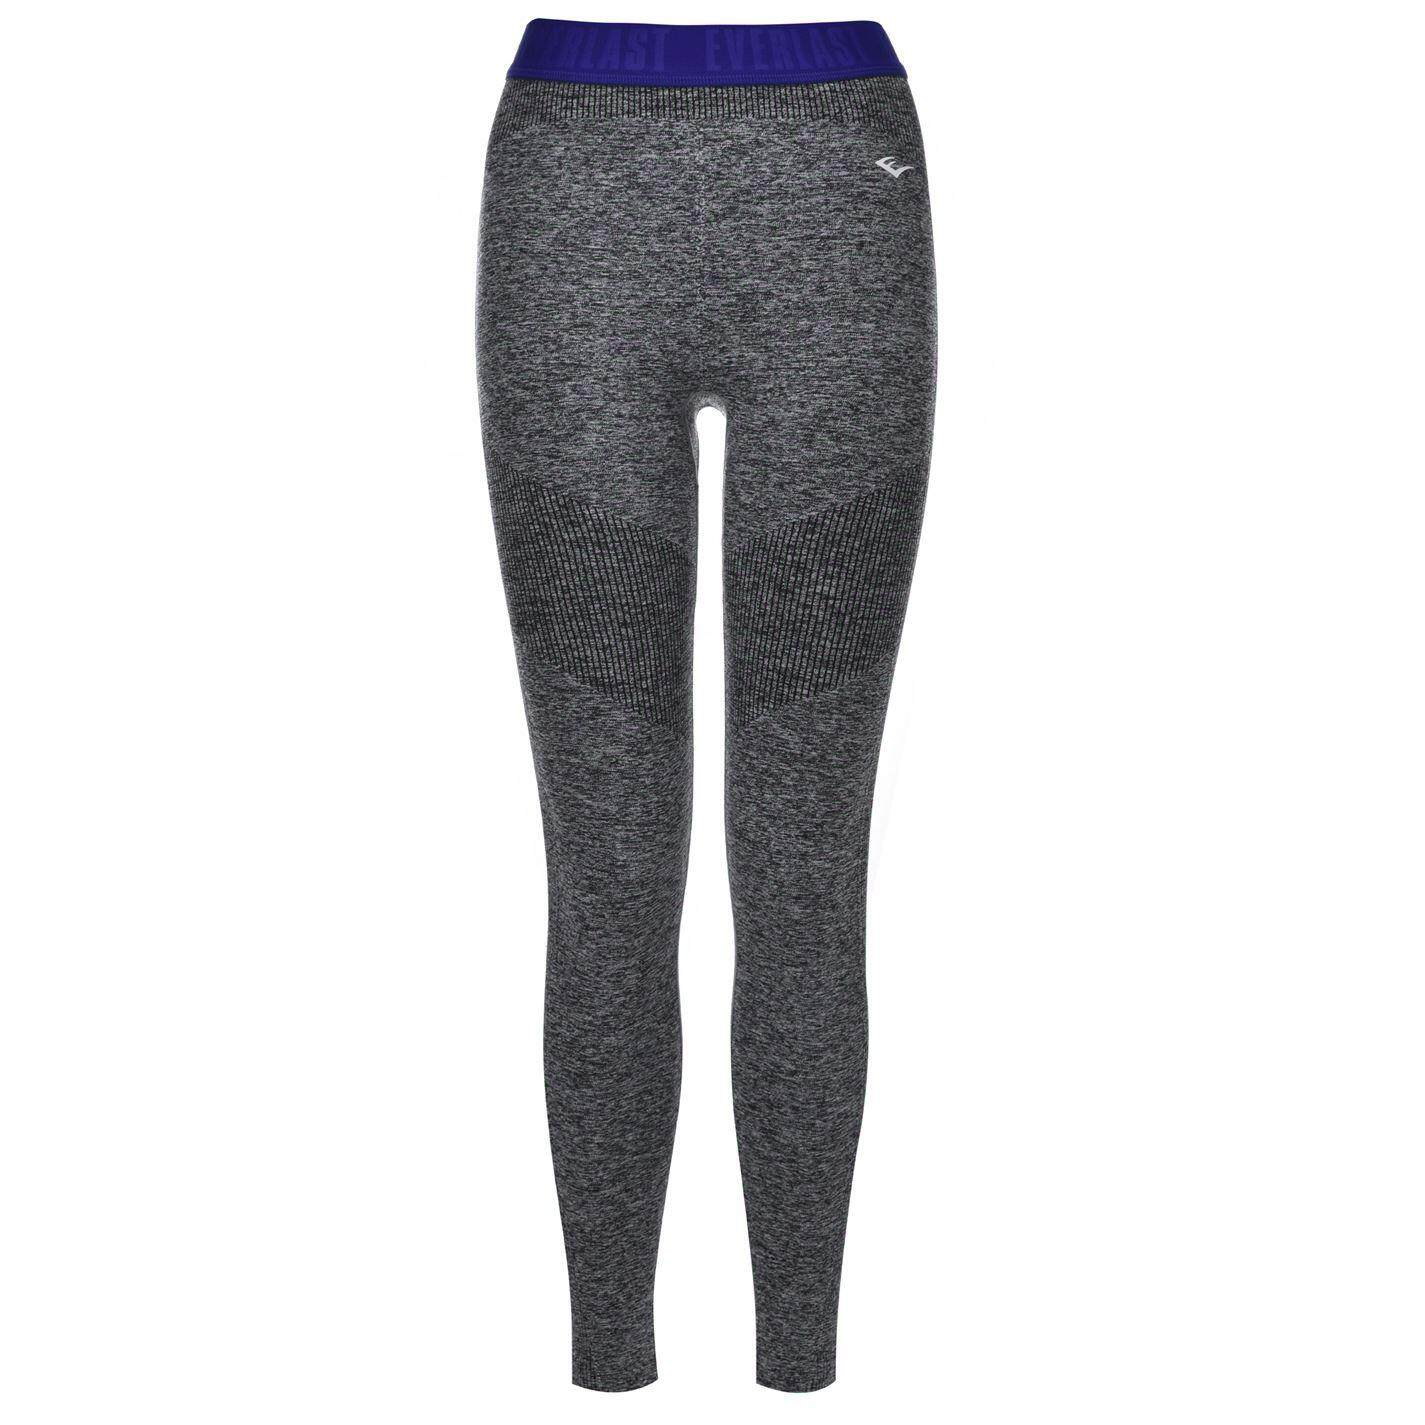 Everlast Womens Seamless Tights (char Marl/blue) By Sports Direct Mst Sdn Bhd.